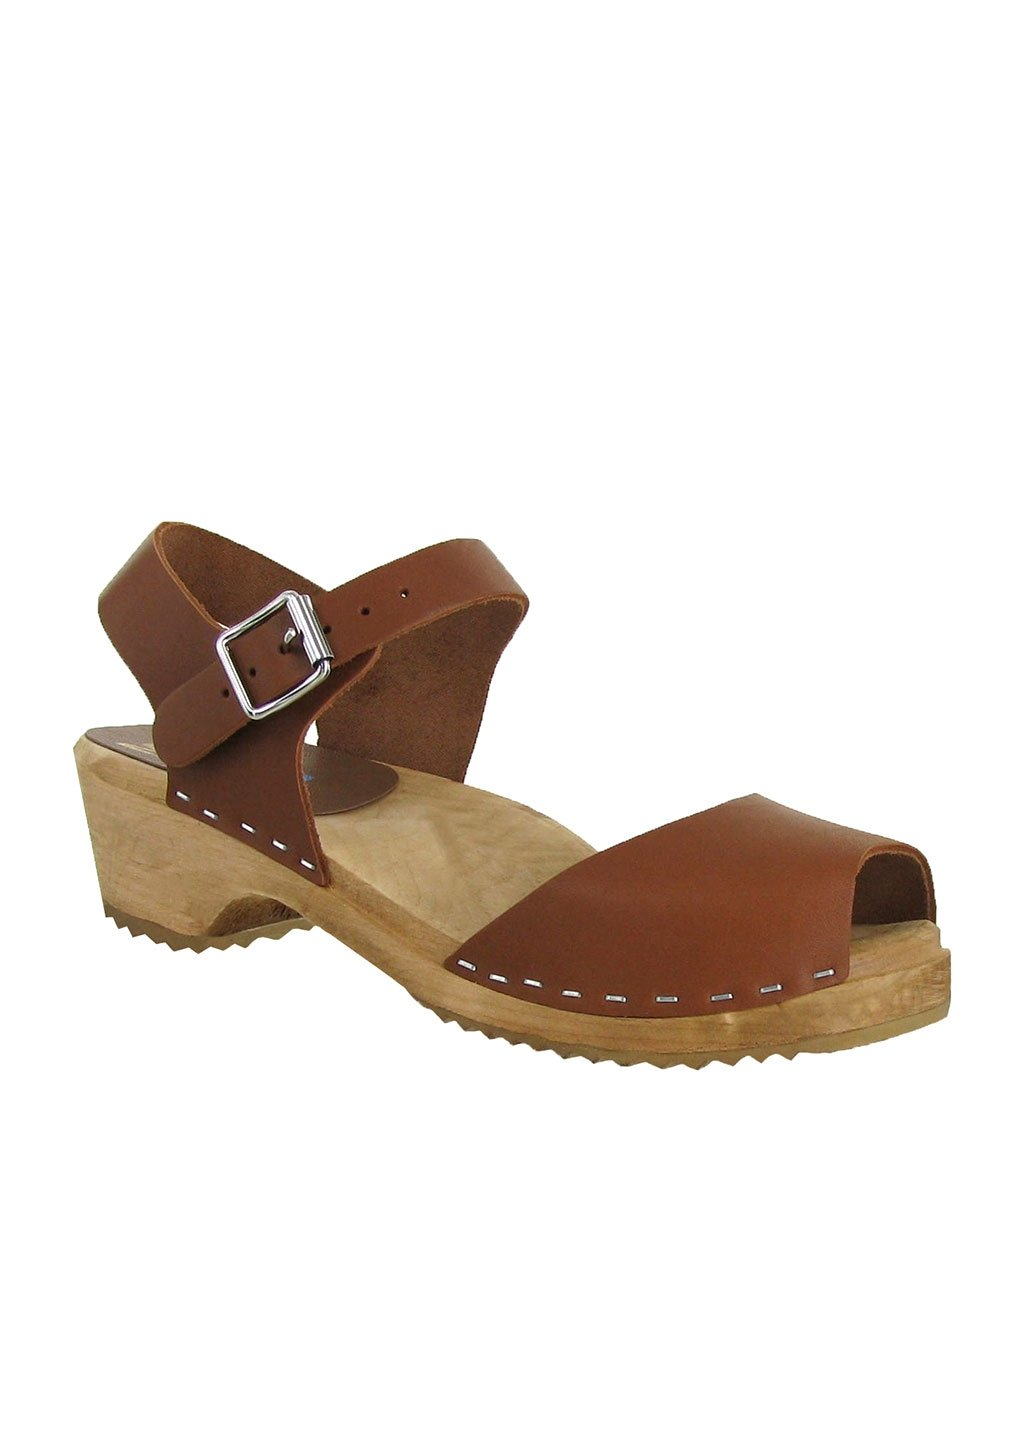 Mia Women's Anja Clog Luggage Leather